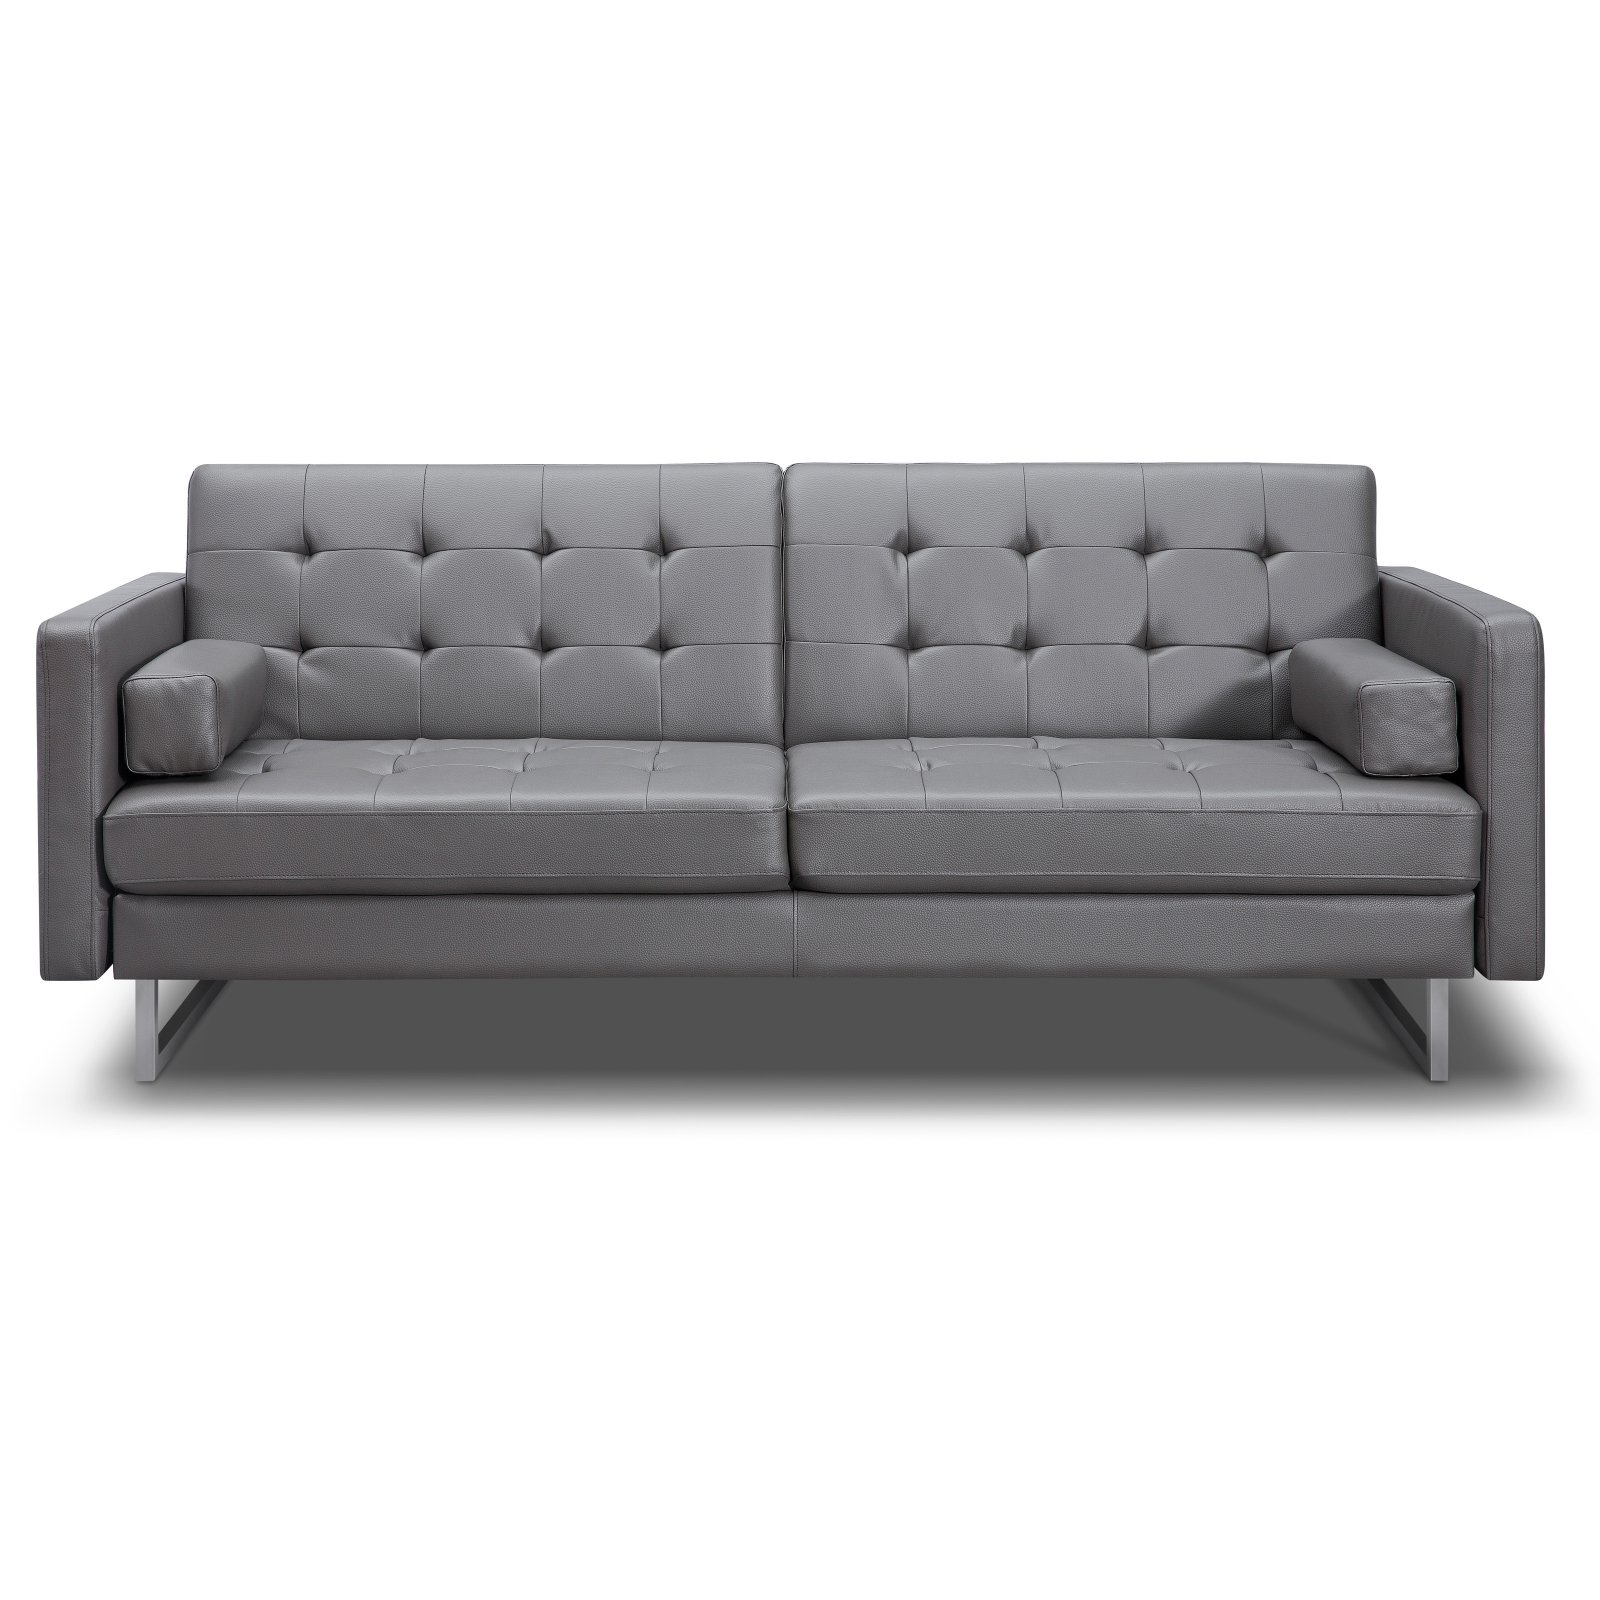 Outstanding Contemporary Leather Sofa Bed Beutiful Home Inspiration Truamahrainfo